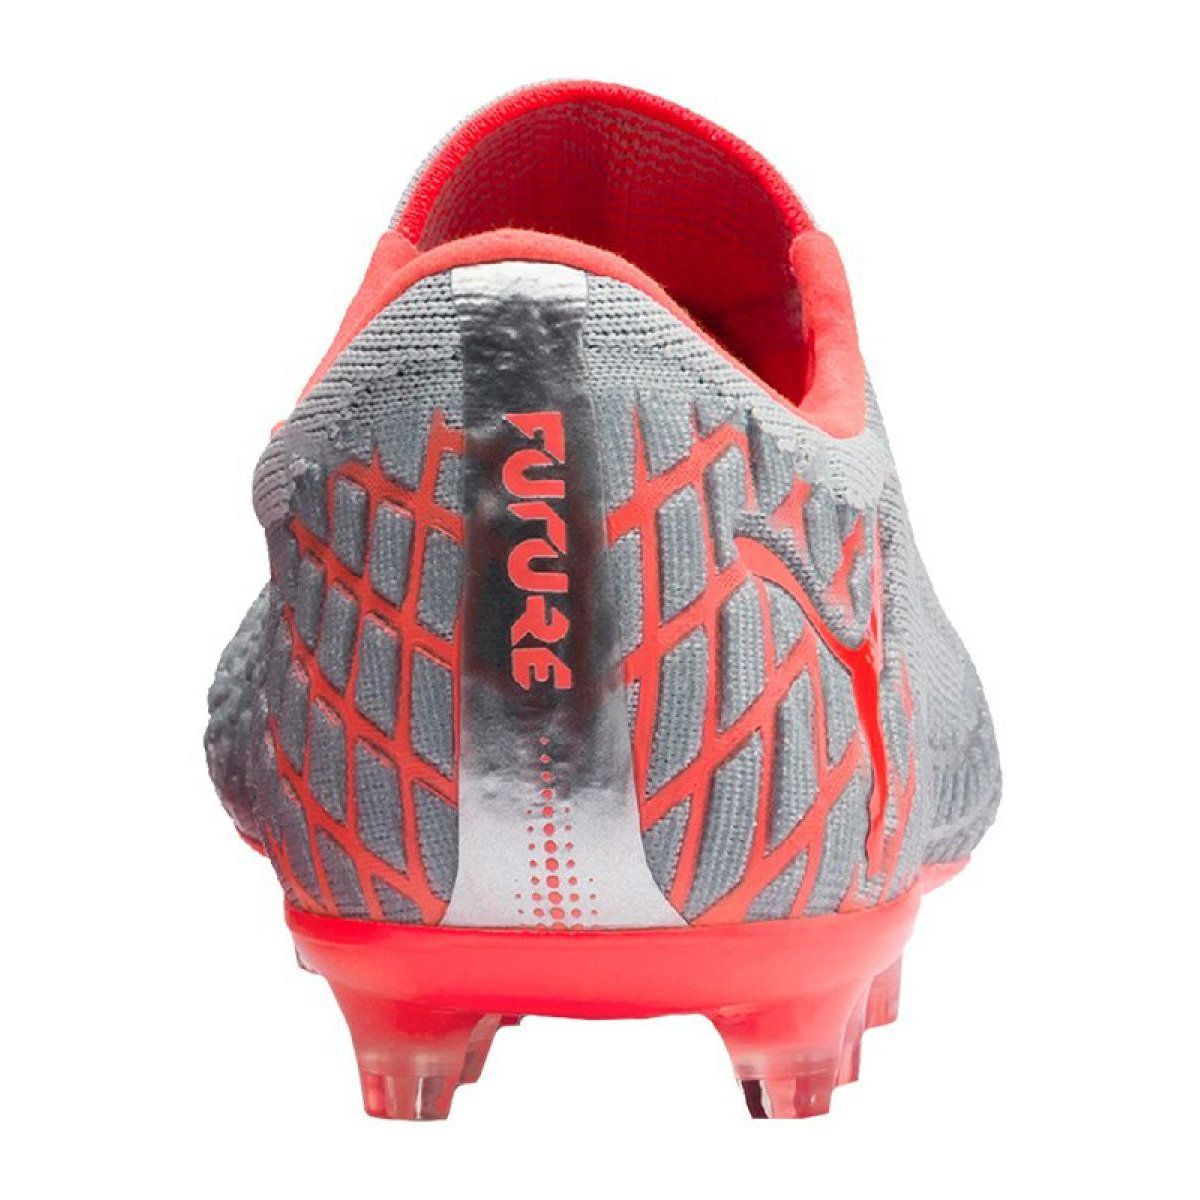 Football Boots Puma Future 4 1 Netfit Low Fg Ag M 105730 01 Grey Multicolored Football Boots Football Shoes Boots